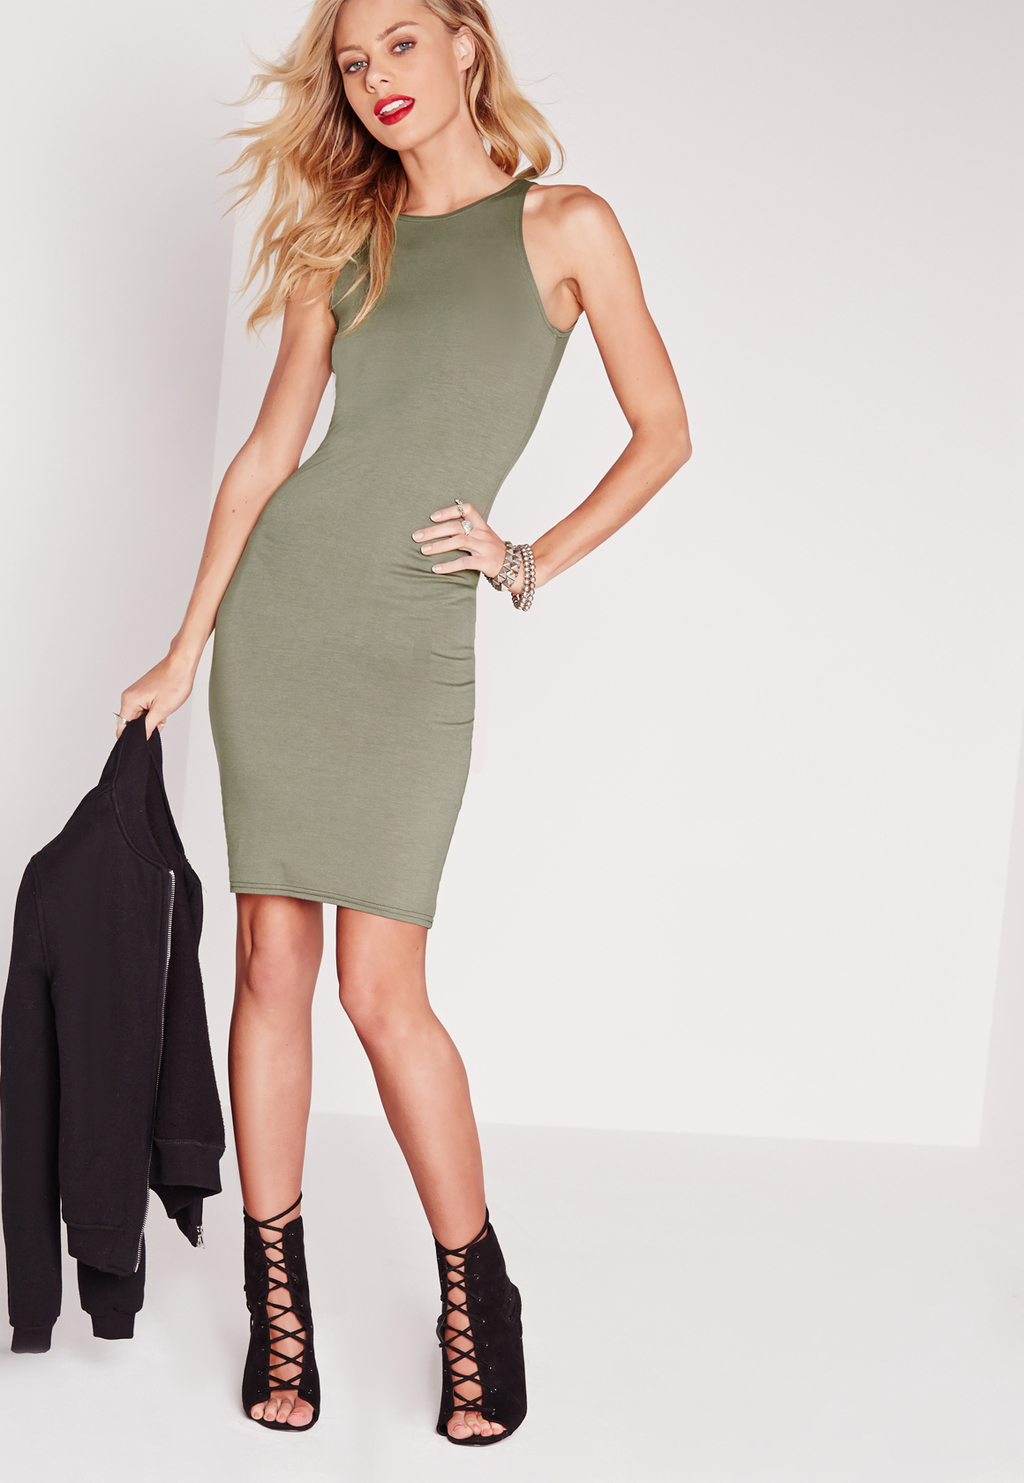 Jersey Racer Front Bodycon Dress Khaki, Beige - fit: tight; pattern: plain; sleeve style: sleeveless; style: bodycon; predominant colour: khaki; occasions: evening; length: just above the knee; fibres: polyester/polyamide - stretch; neckline: crew; sleeve length: sleeveless; texture group: jersey - clingy; pattern type: fabric; season: s/s 2016; wardrobe: event